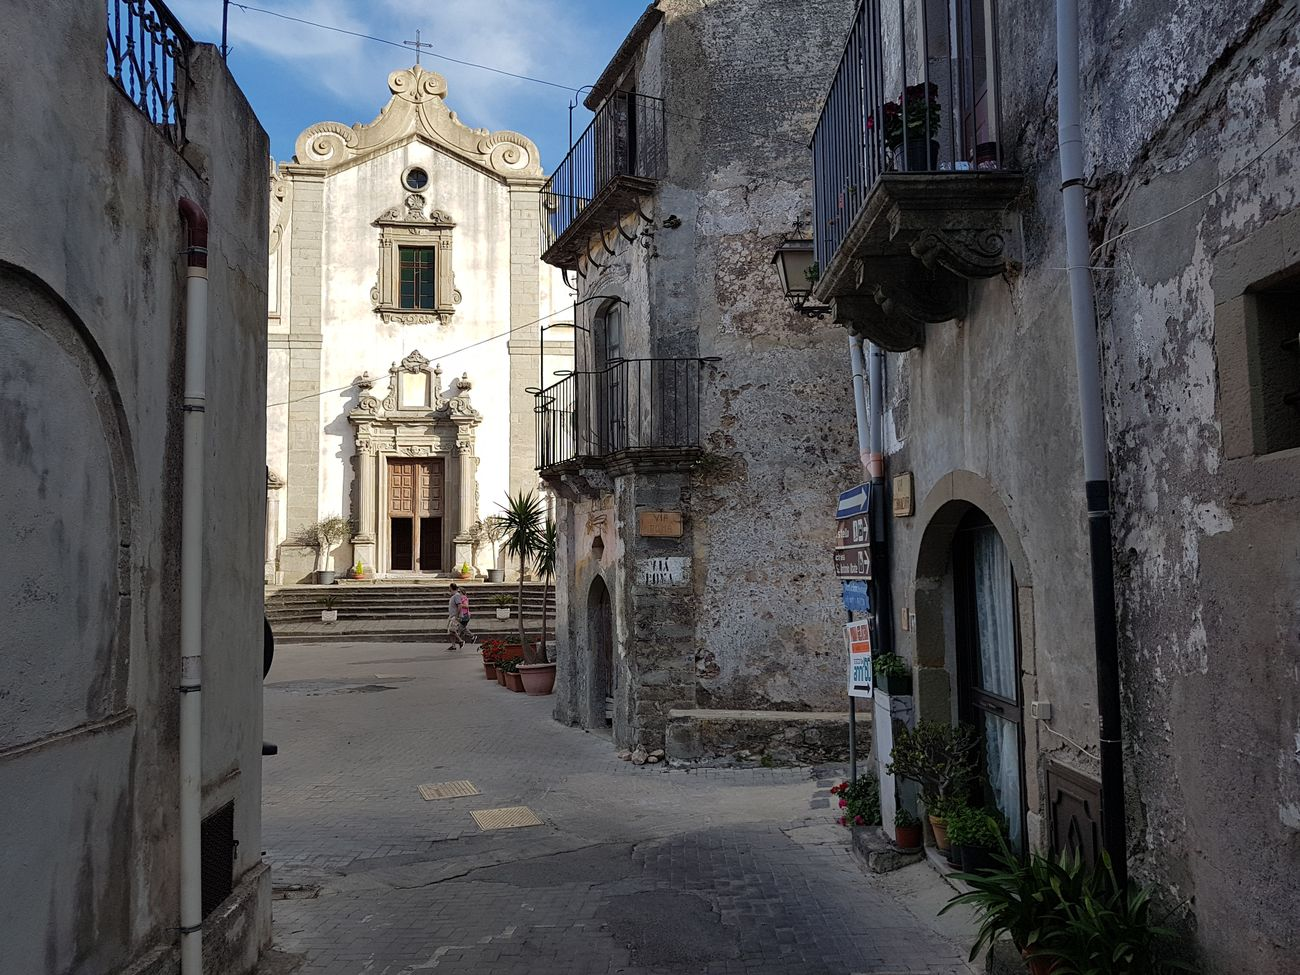 The Church Sicily Italy Italia Forza D'agrò Church Town Italian Typical Architecture History Religion Built Structure No People Travel Destinations Day Outdoors Architecture Europe Sunset Photographing Travel Photography Tourism Godfather Famous Place Iconic